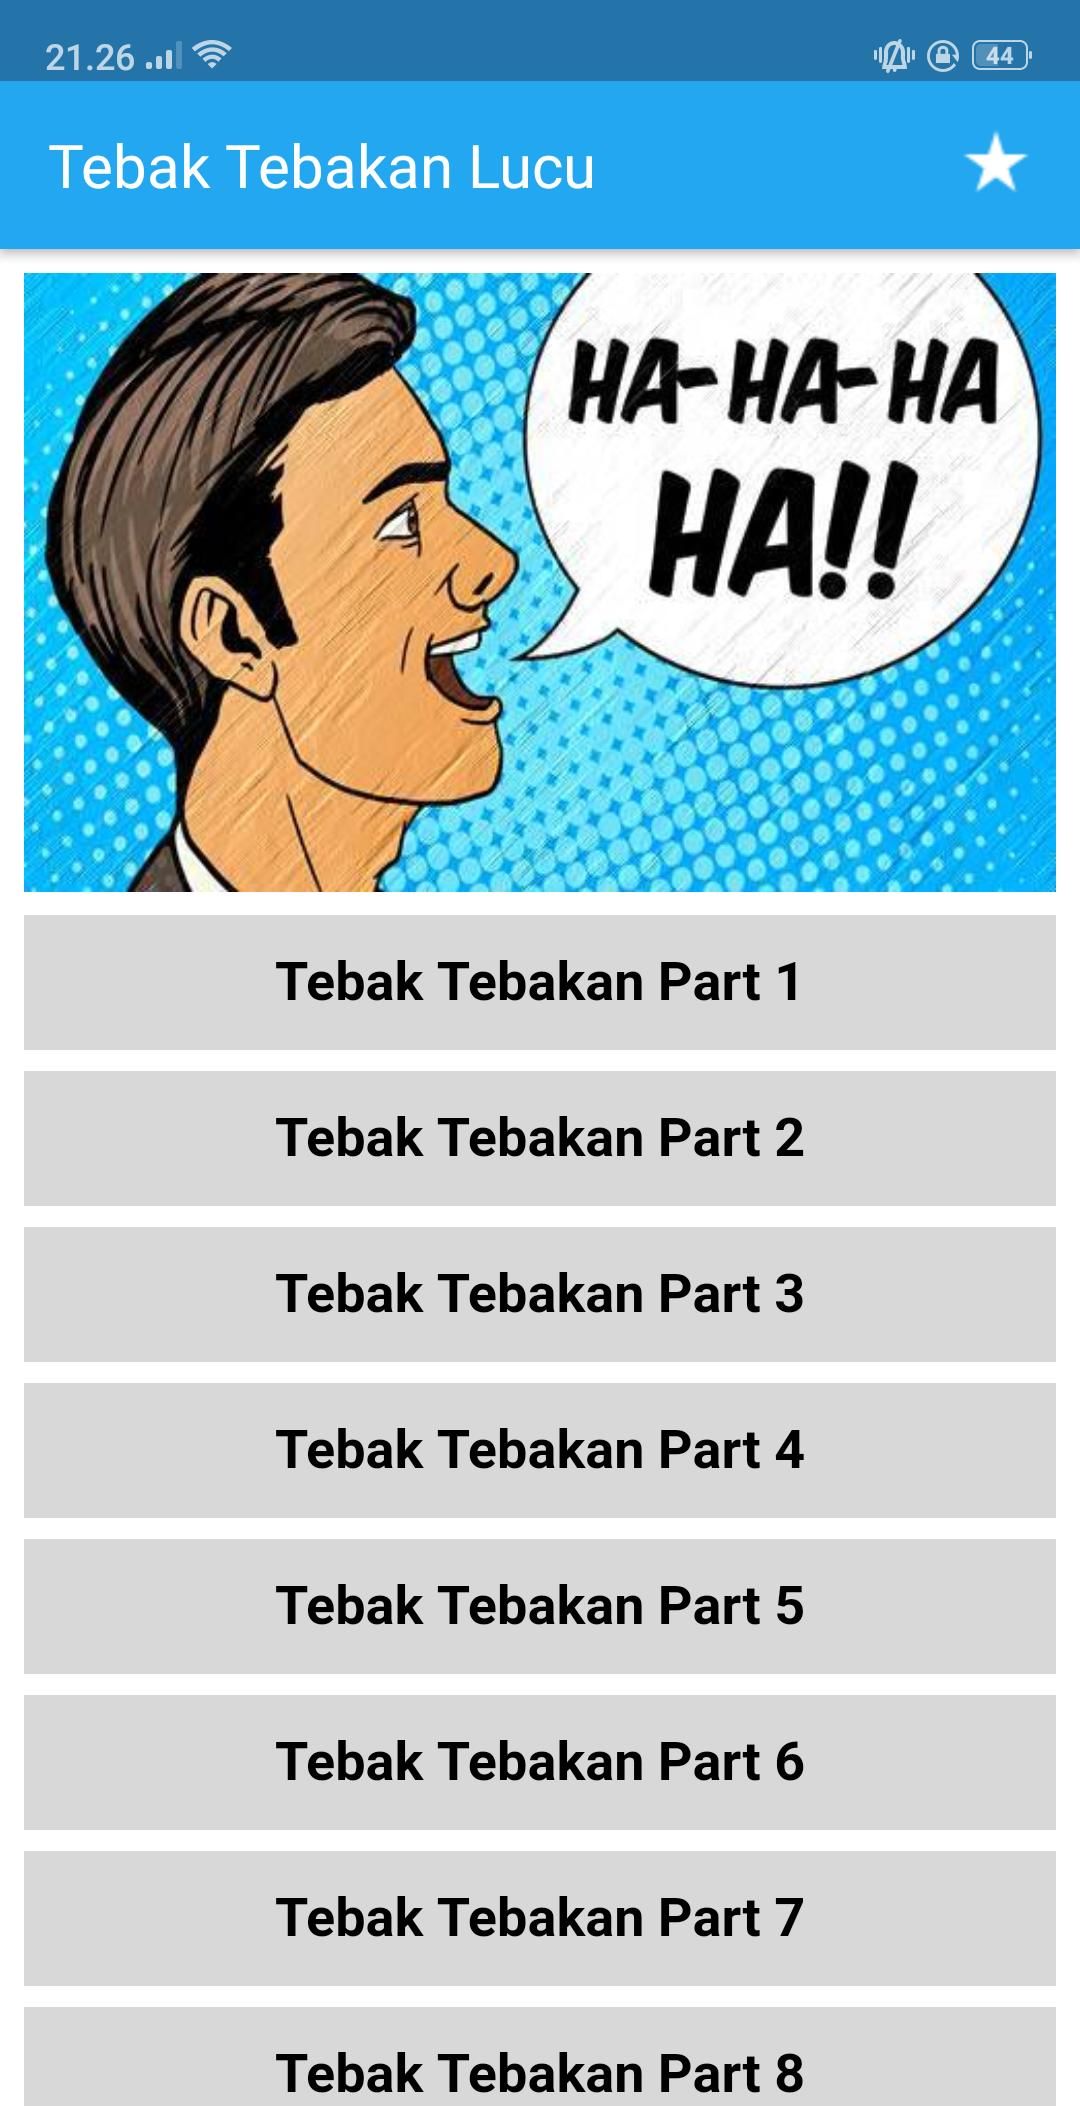 Tebak Tebakan Lucu for Android APK Download